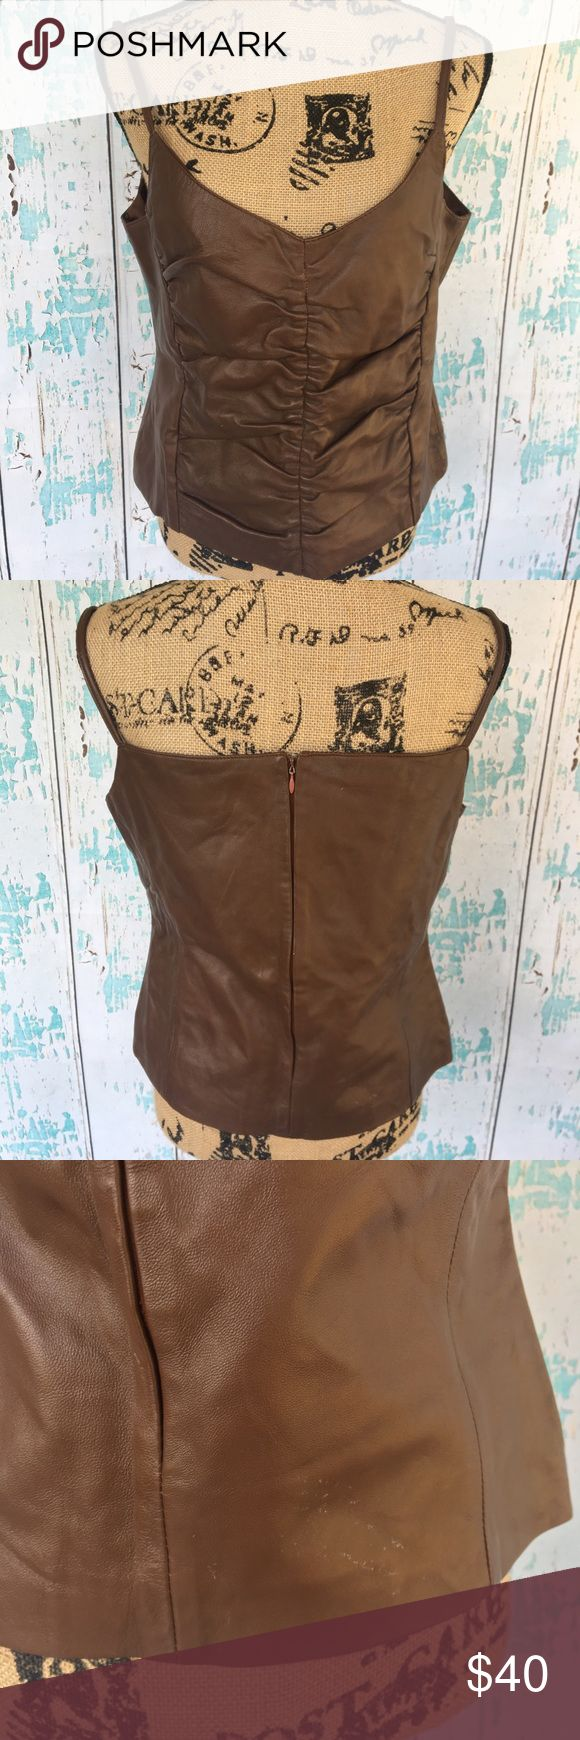 NWT British Khaki sheep leather brown tank size 10 NWT British Khaki sheep leather brown tank size 10. Looks like slight wear from storage but new with tags. British Khaki Tops Tank Tops